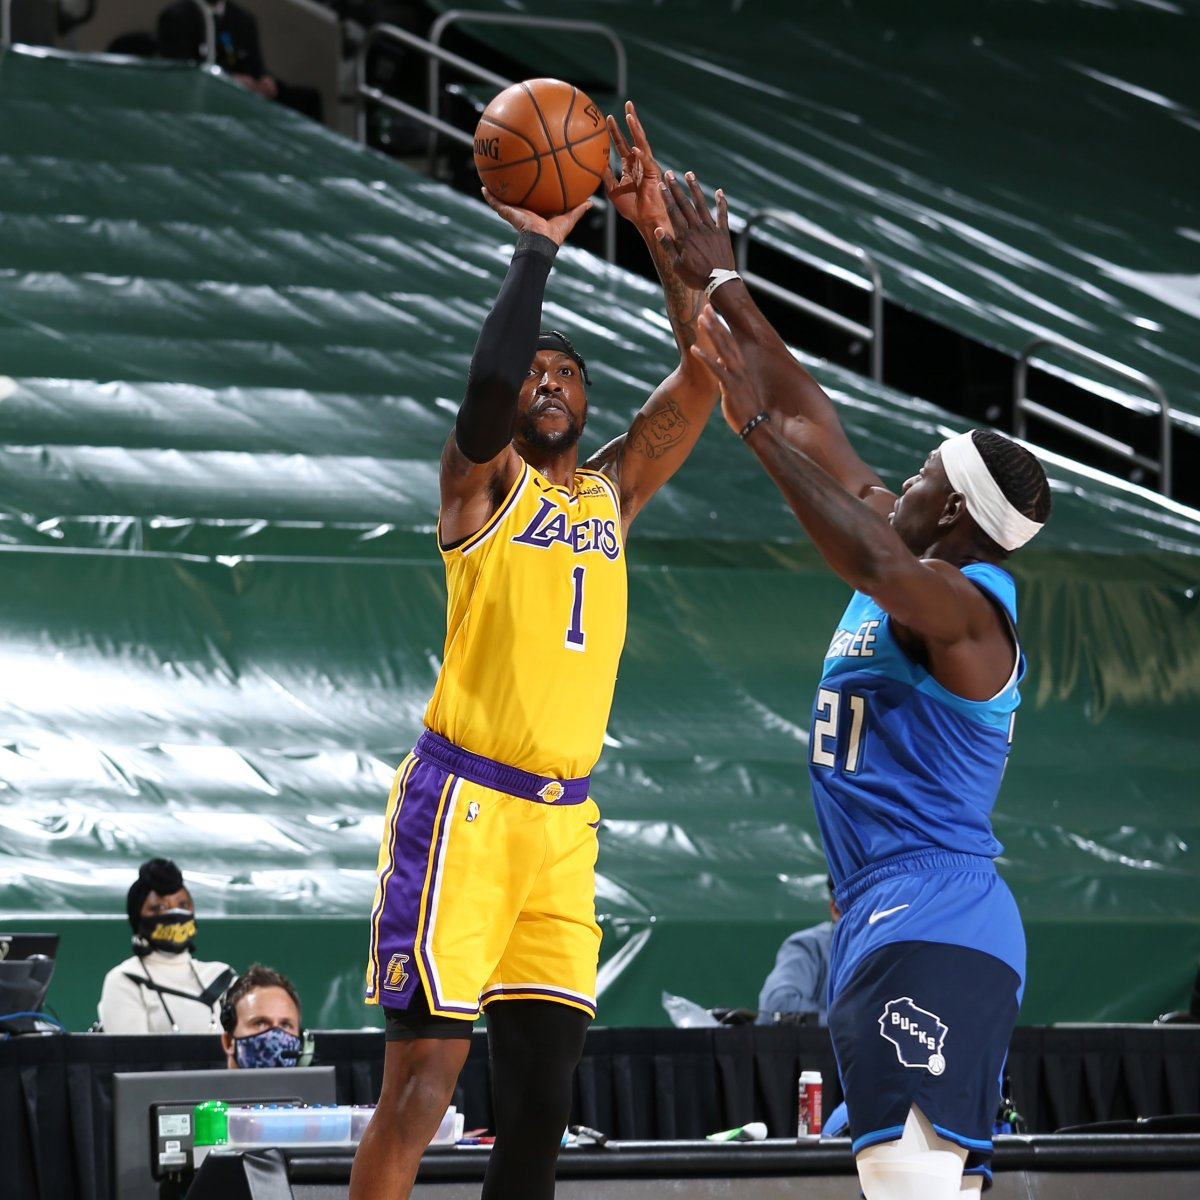 Kentavious Caldwell-Pope (7-10 3PM tonight) has shot 18-for-28 (64.3%) from beyond the arc over the last five games. That is the highest 3-point shooting percentage over a five-game span in @Lakers history (min. 25 attempts). @EliasSports https://t.co/sOcFv28SKO